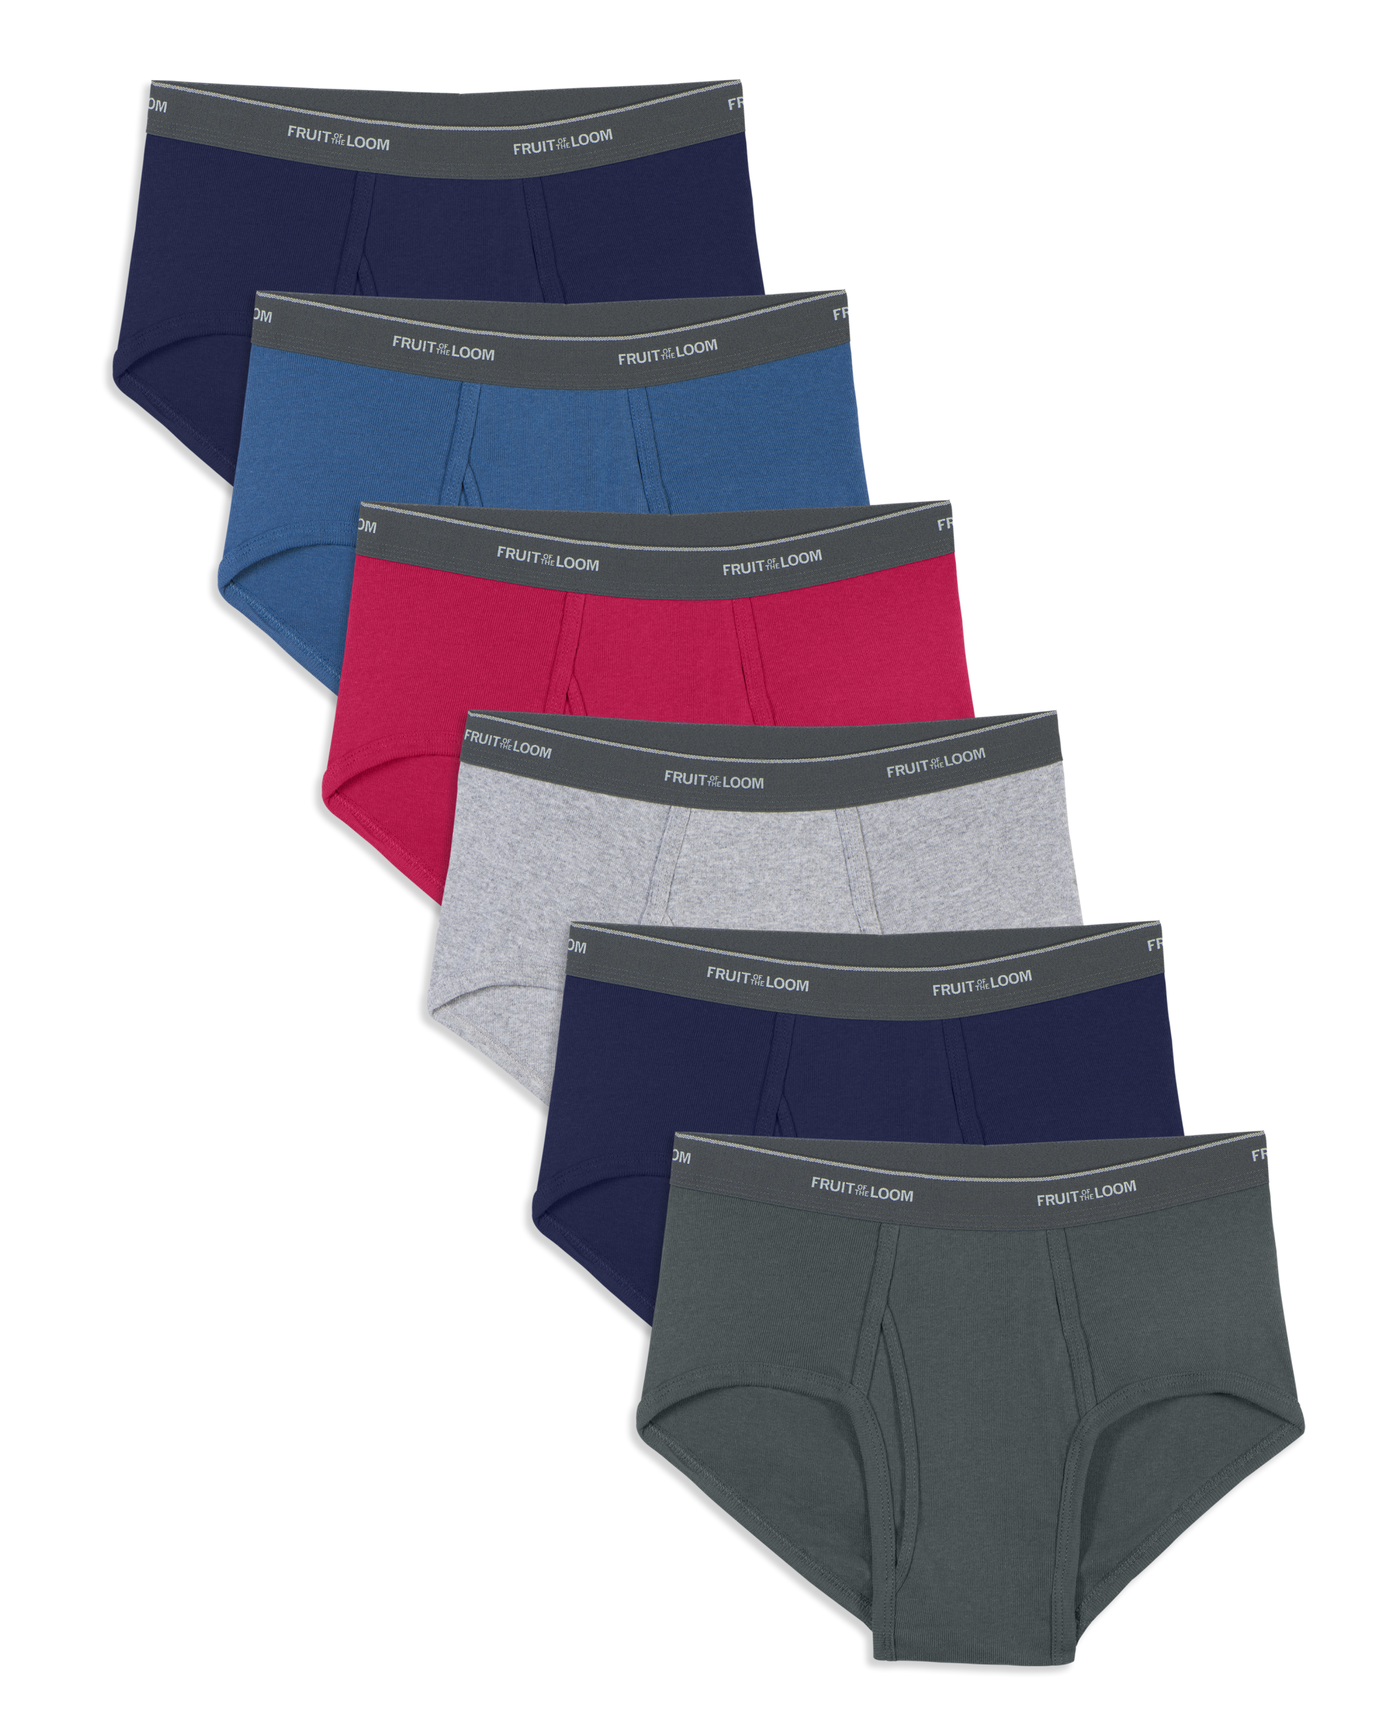 2ee29a65d66f4 Men s 6 Pack Assorted Color Fashion Brief Assorted colors